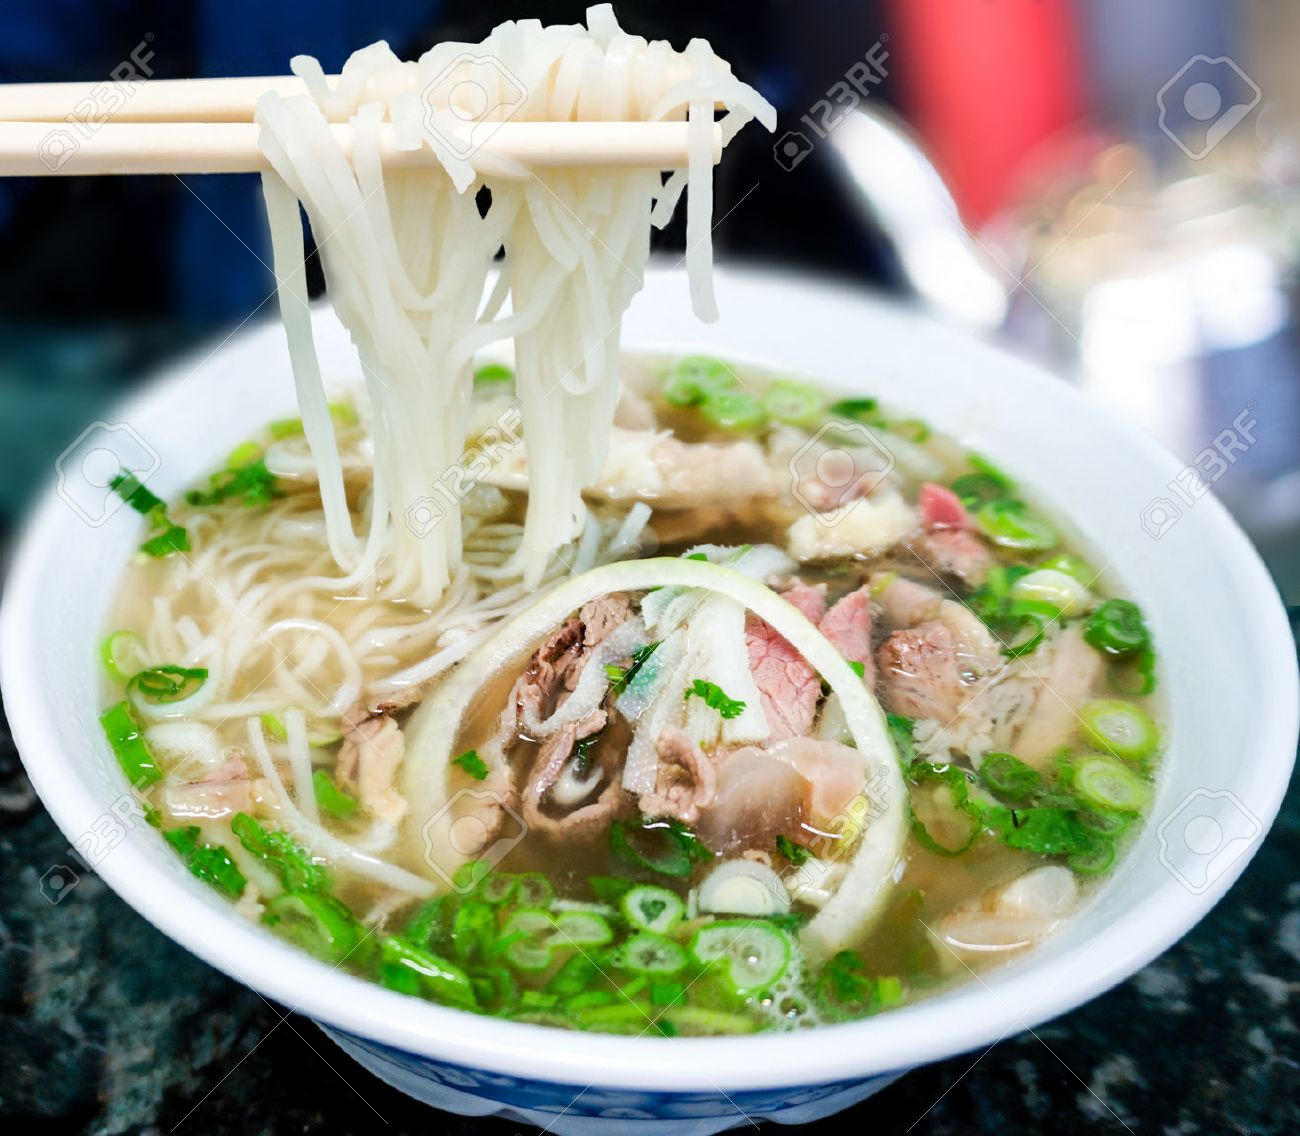 Bowl of Vietnamese pho noodle soup with rare beef, tendon, tripe